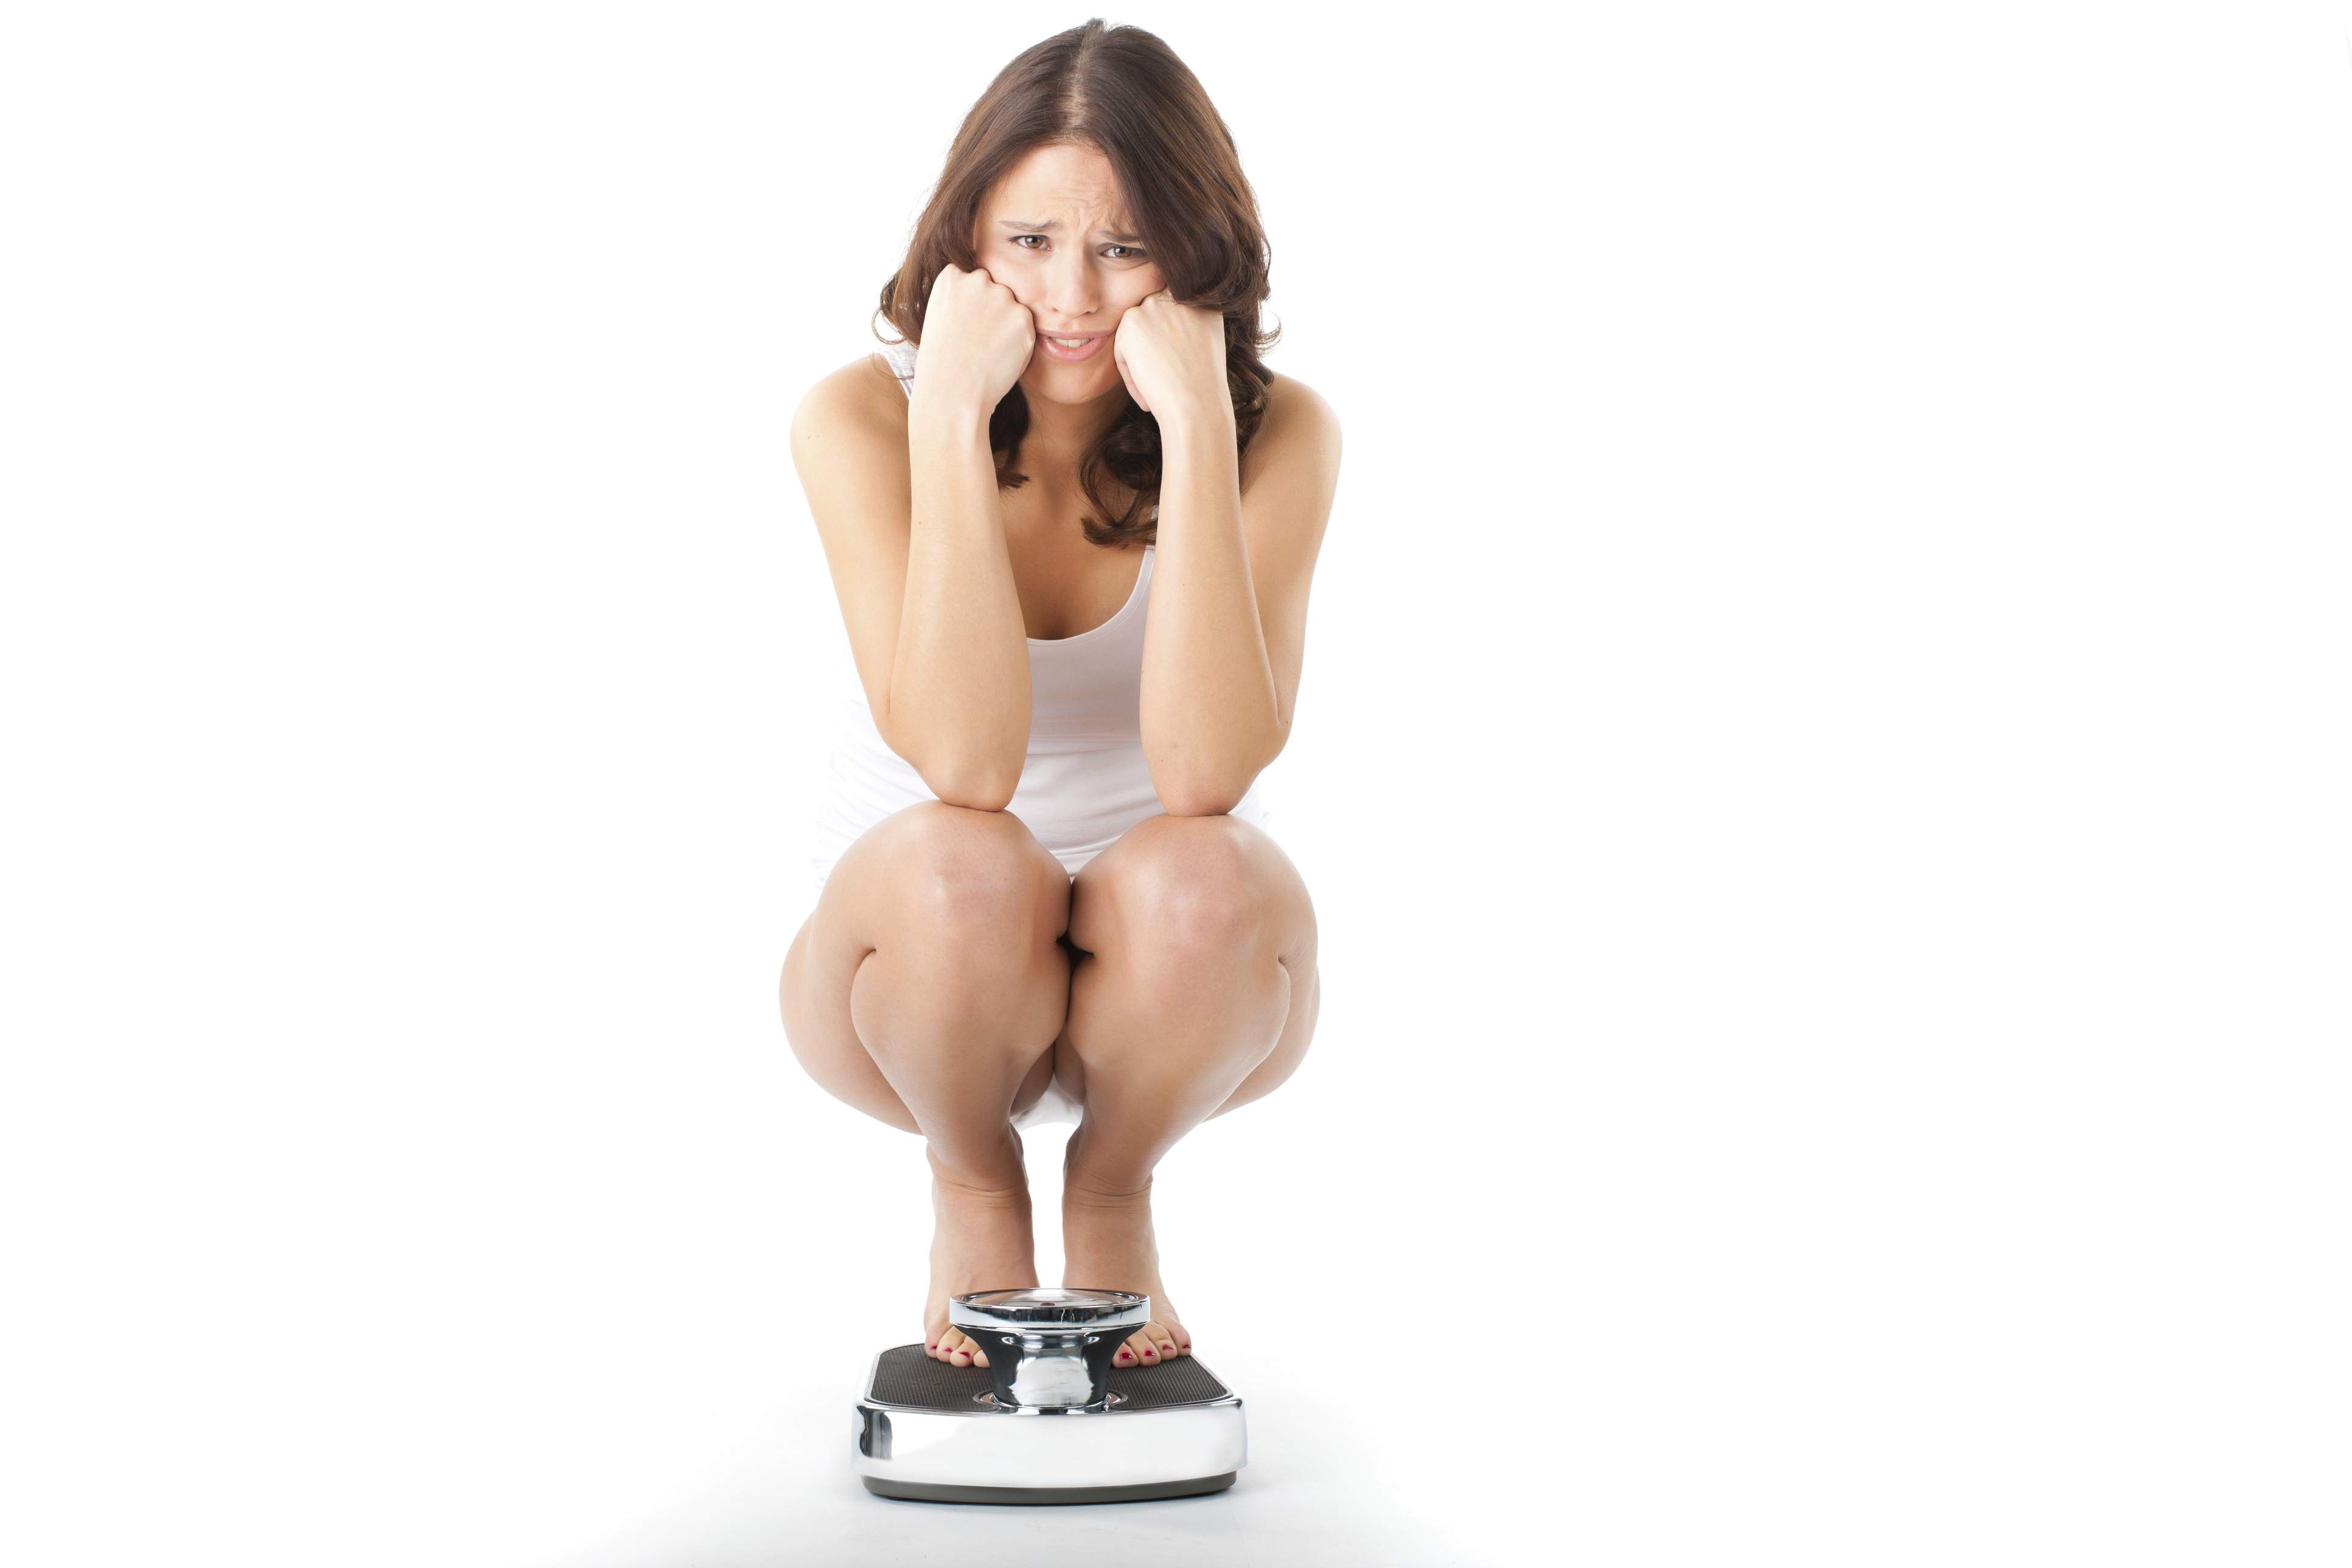 frustrated-with-losing-weight